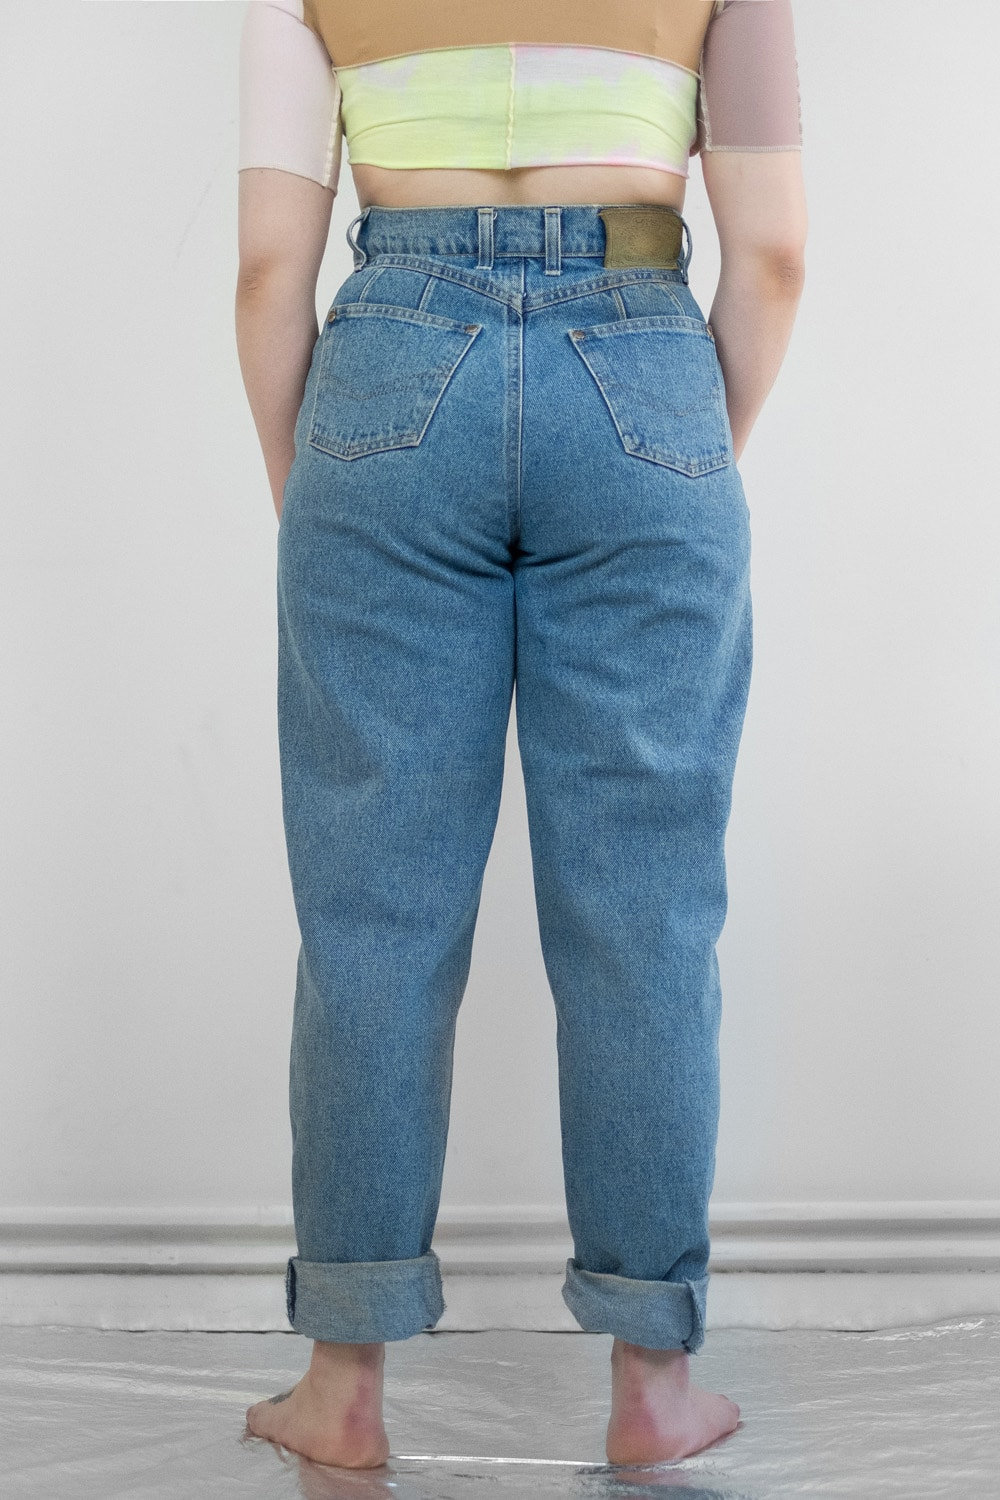 HELP Bling Jeans 2